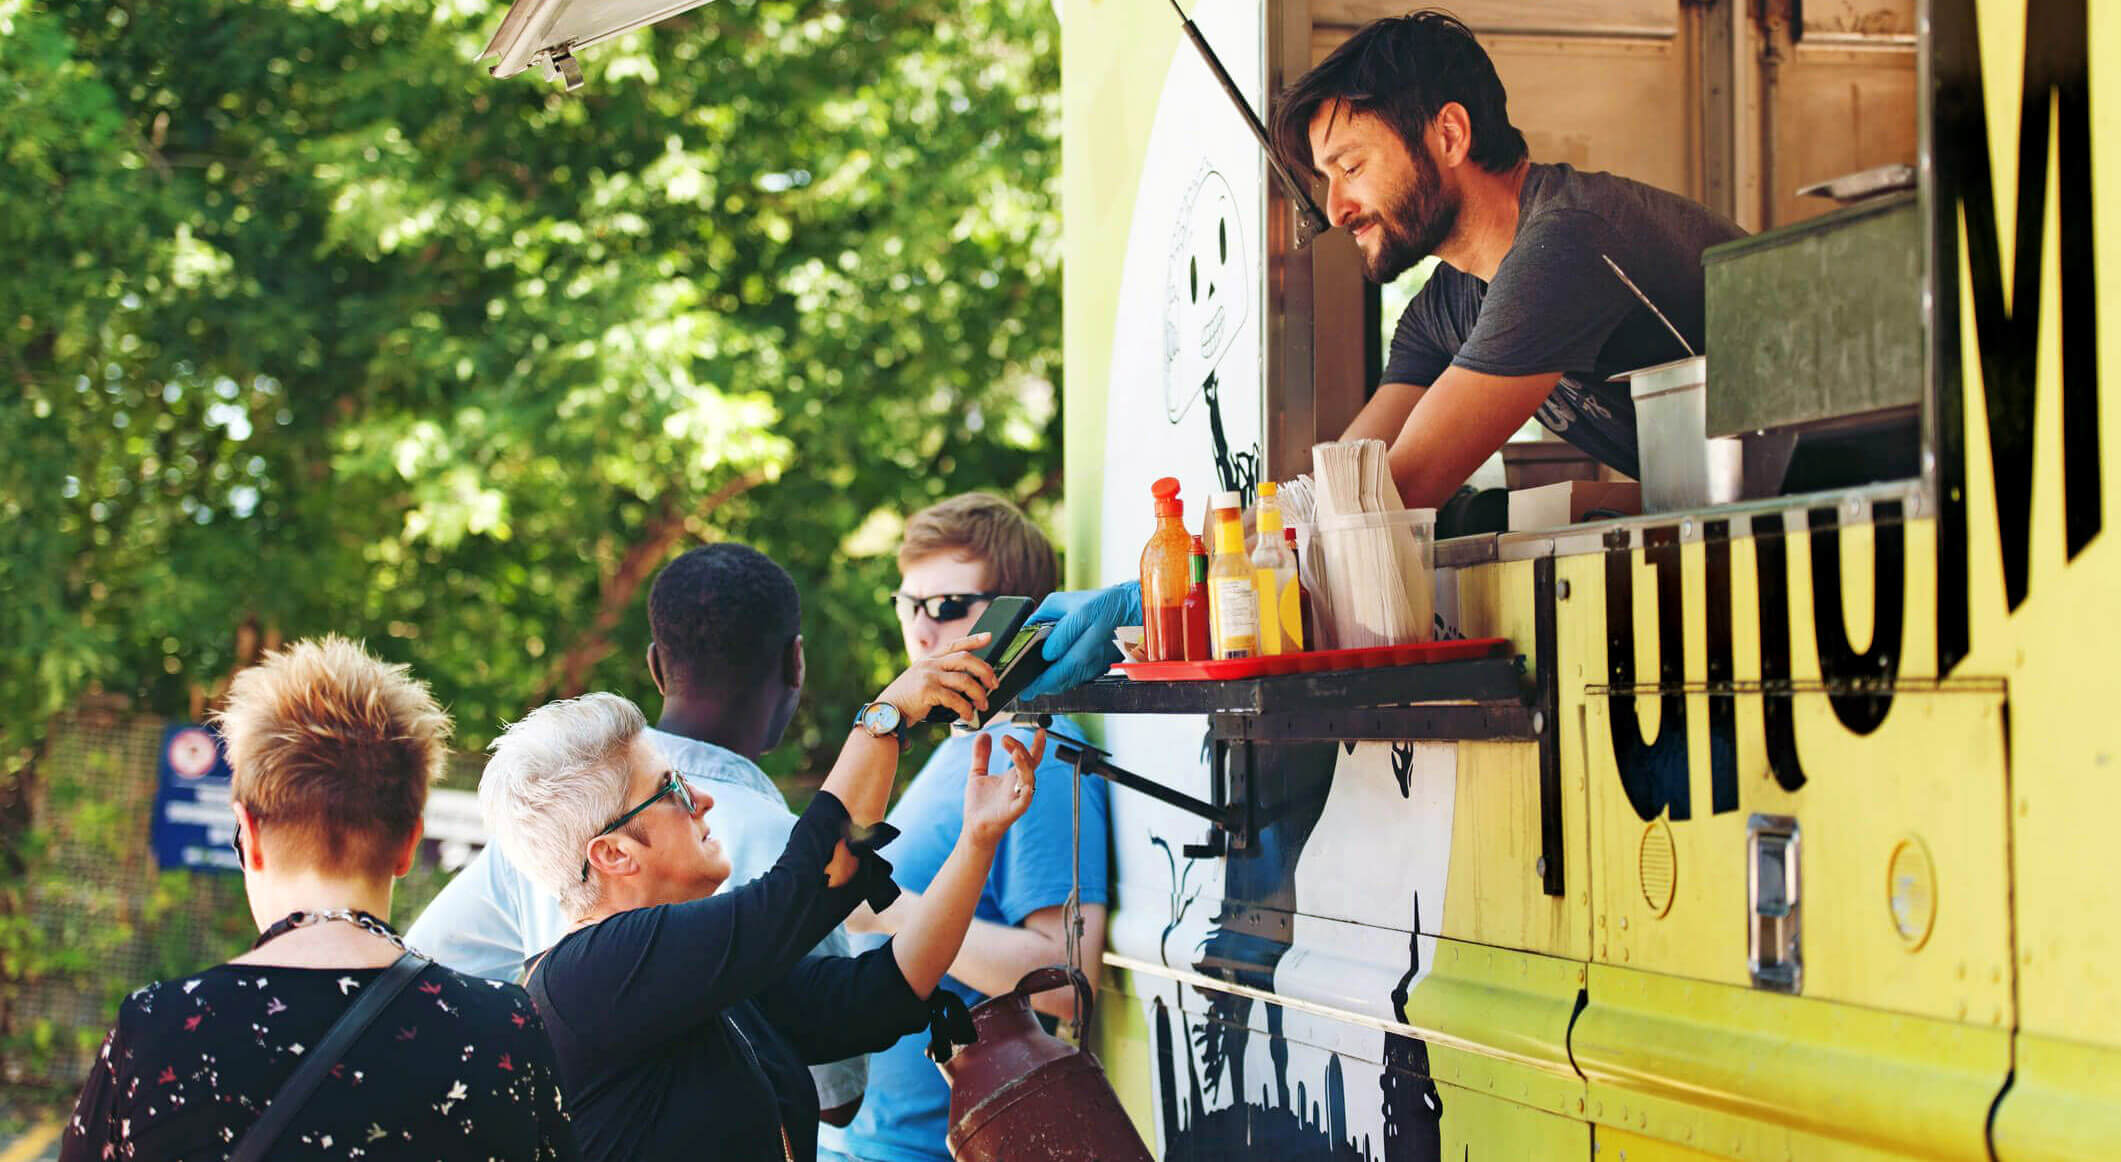 customer being served by a man inside a yellow-colored food truck